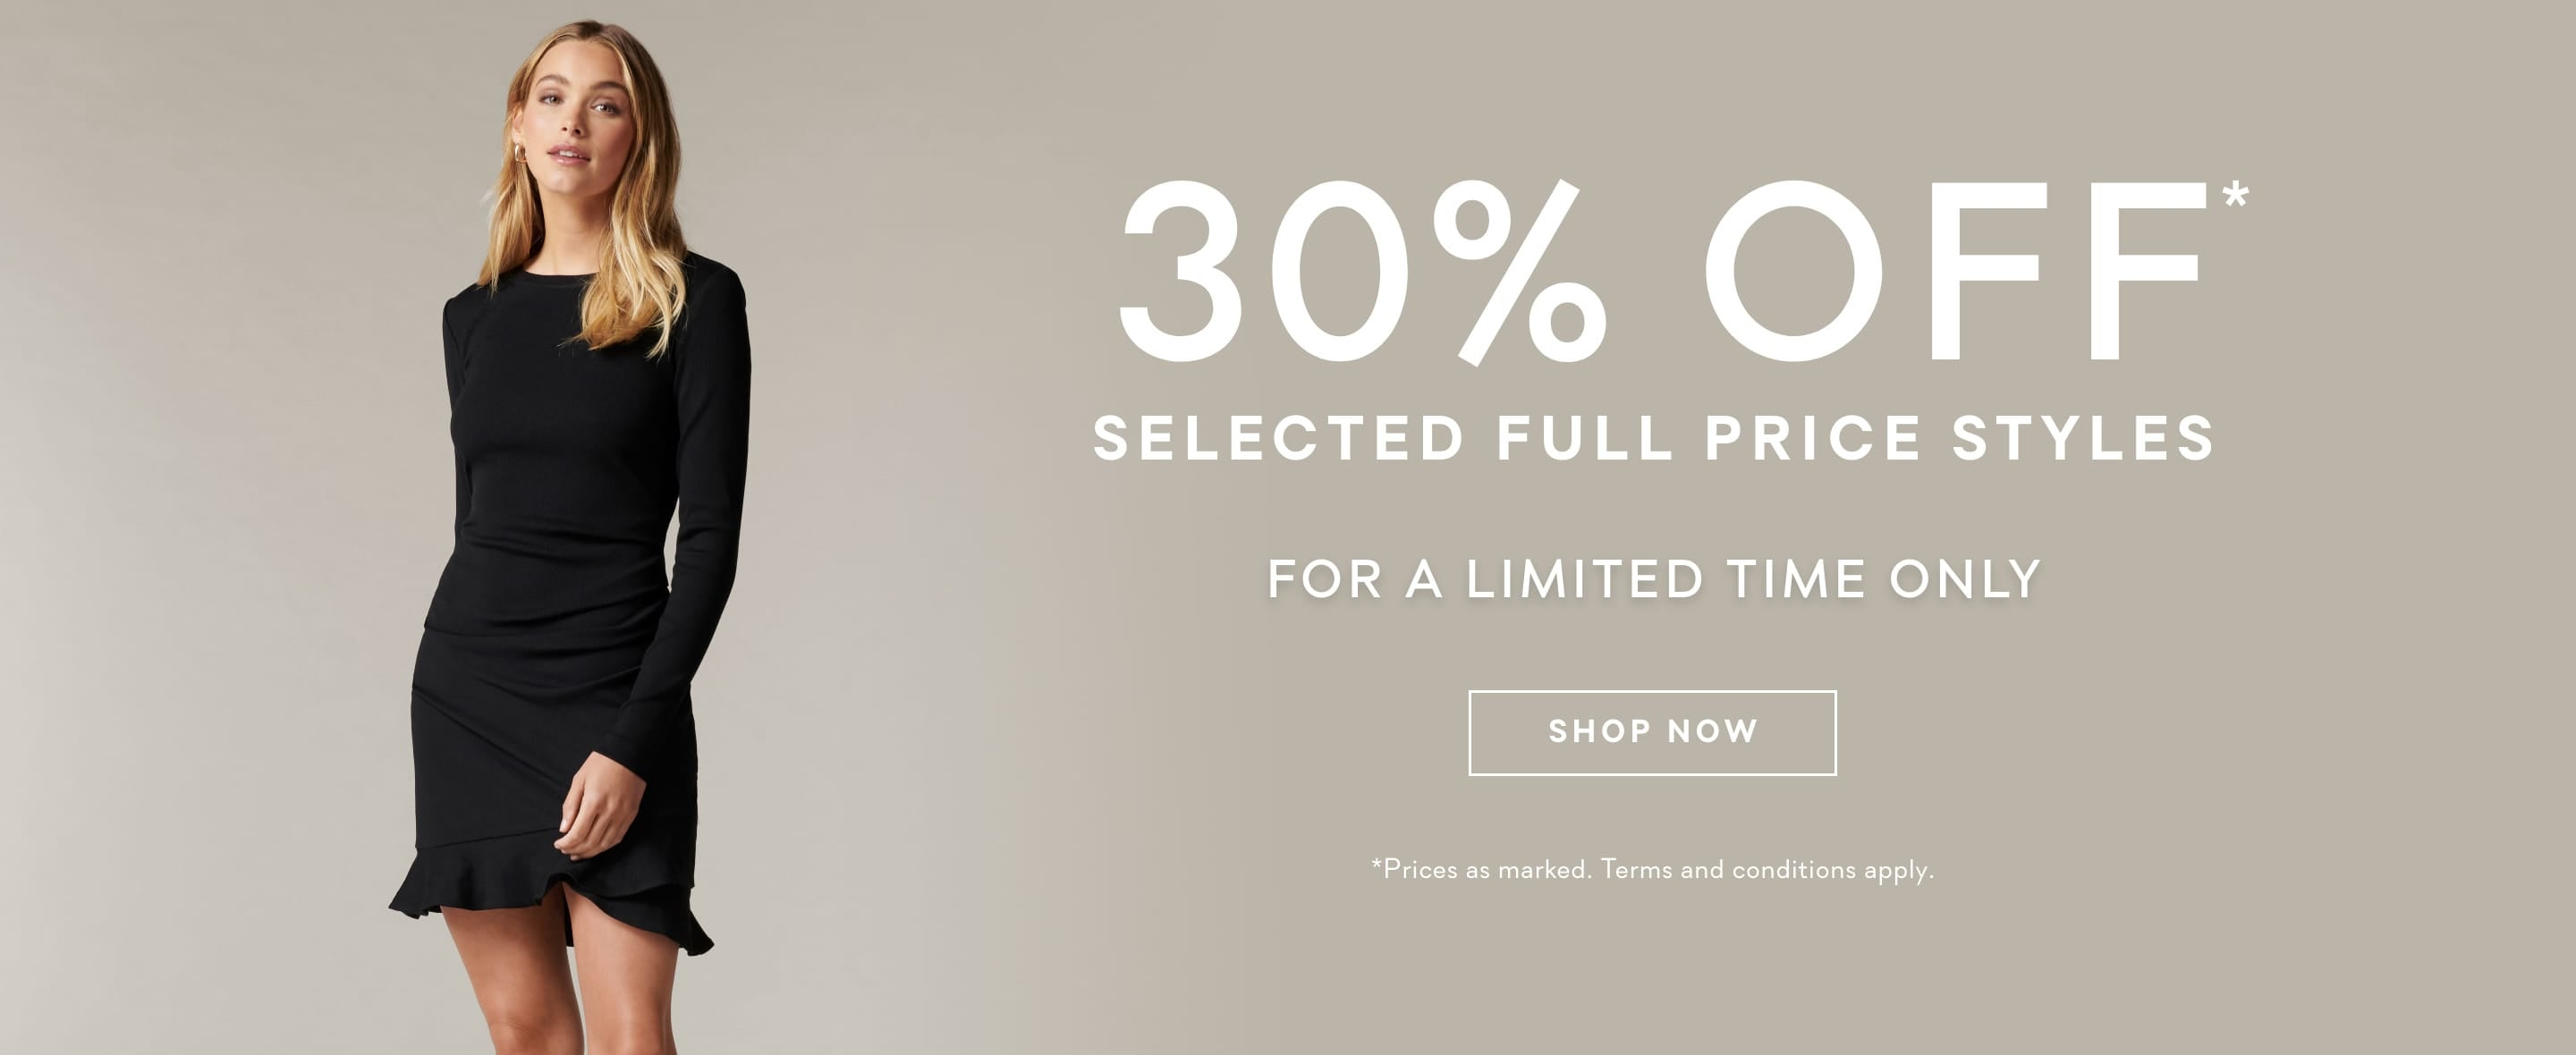 30% Off Selected Styles - Limited Time Only